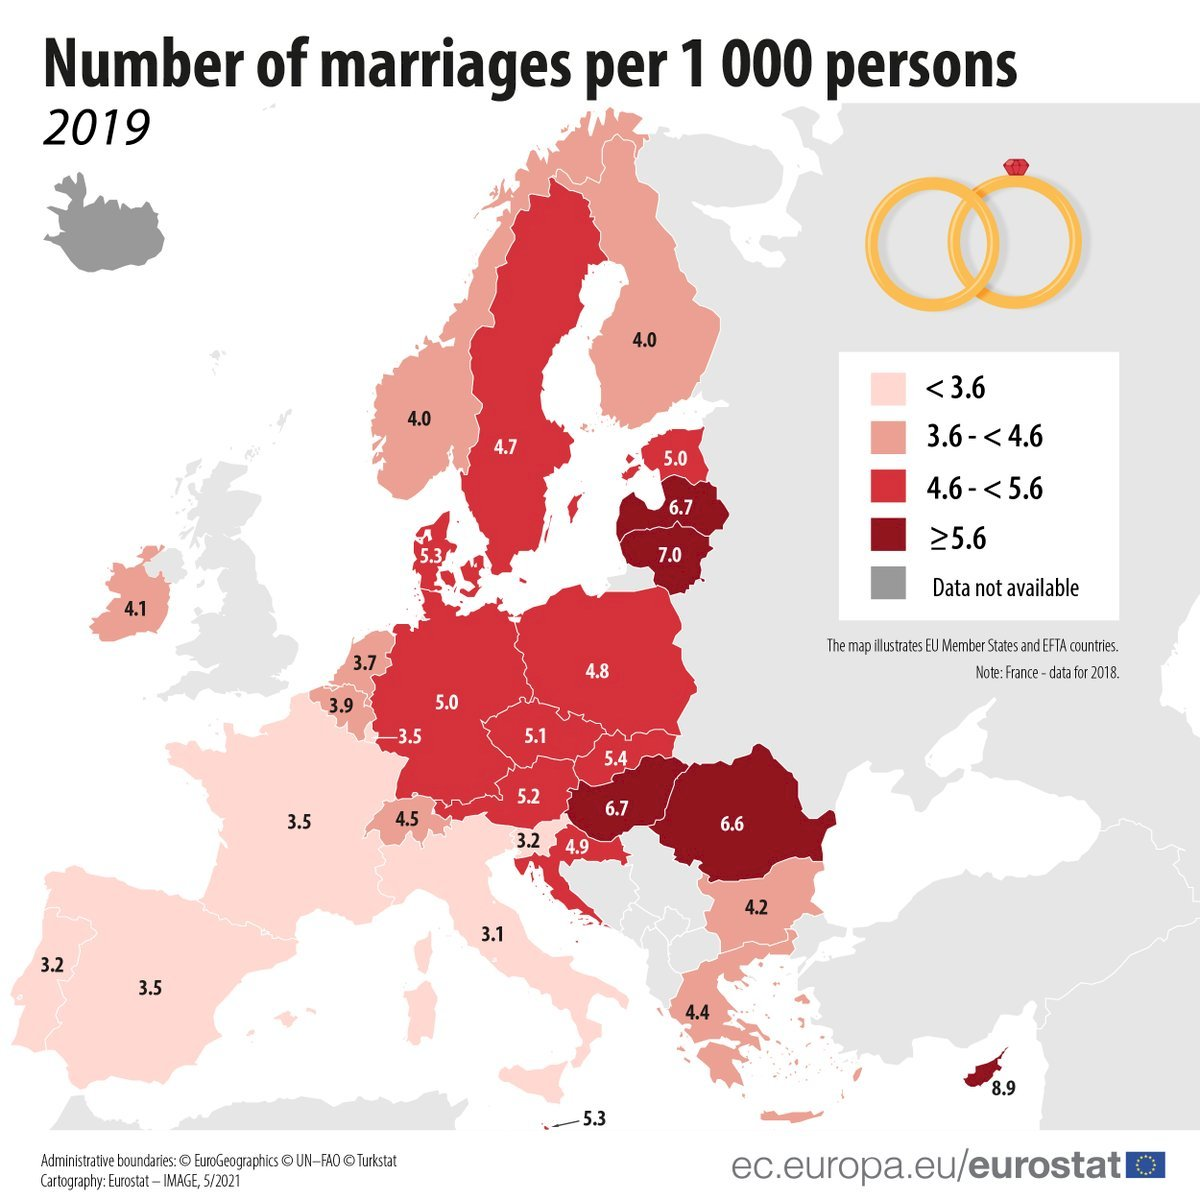 👰🏻💒💑 Highest number of #marriages: 🇨🇾 Cyprus (8.9 per 1 000 inhabitants) 🇱🇹 Lithuania (7) 🇱🇻 Latvia, 🇭🇺 Hungary (both 6.7) 🇷🇴 Romania (6.6) Lowest: 🇮🇹 Italy (3.1) 🇵🇹 Portugal, 🇸🇮 Slovenia (both 3.2) 🇫🇷 France, 🇪🇸 Spain, 🇱🇺 Luxembourg (all 3.5) 👉🏾 https://t.co/Eg0QHh9KB5 https://t.co/vditAm6tzY